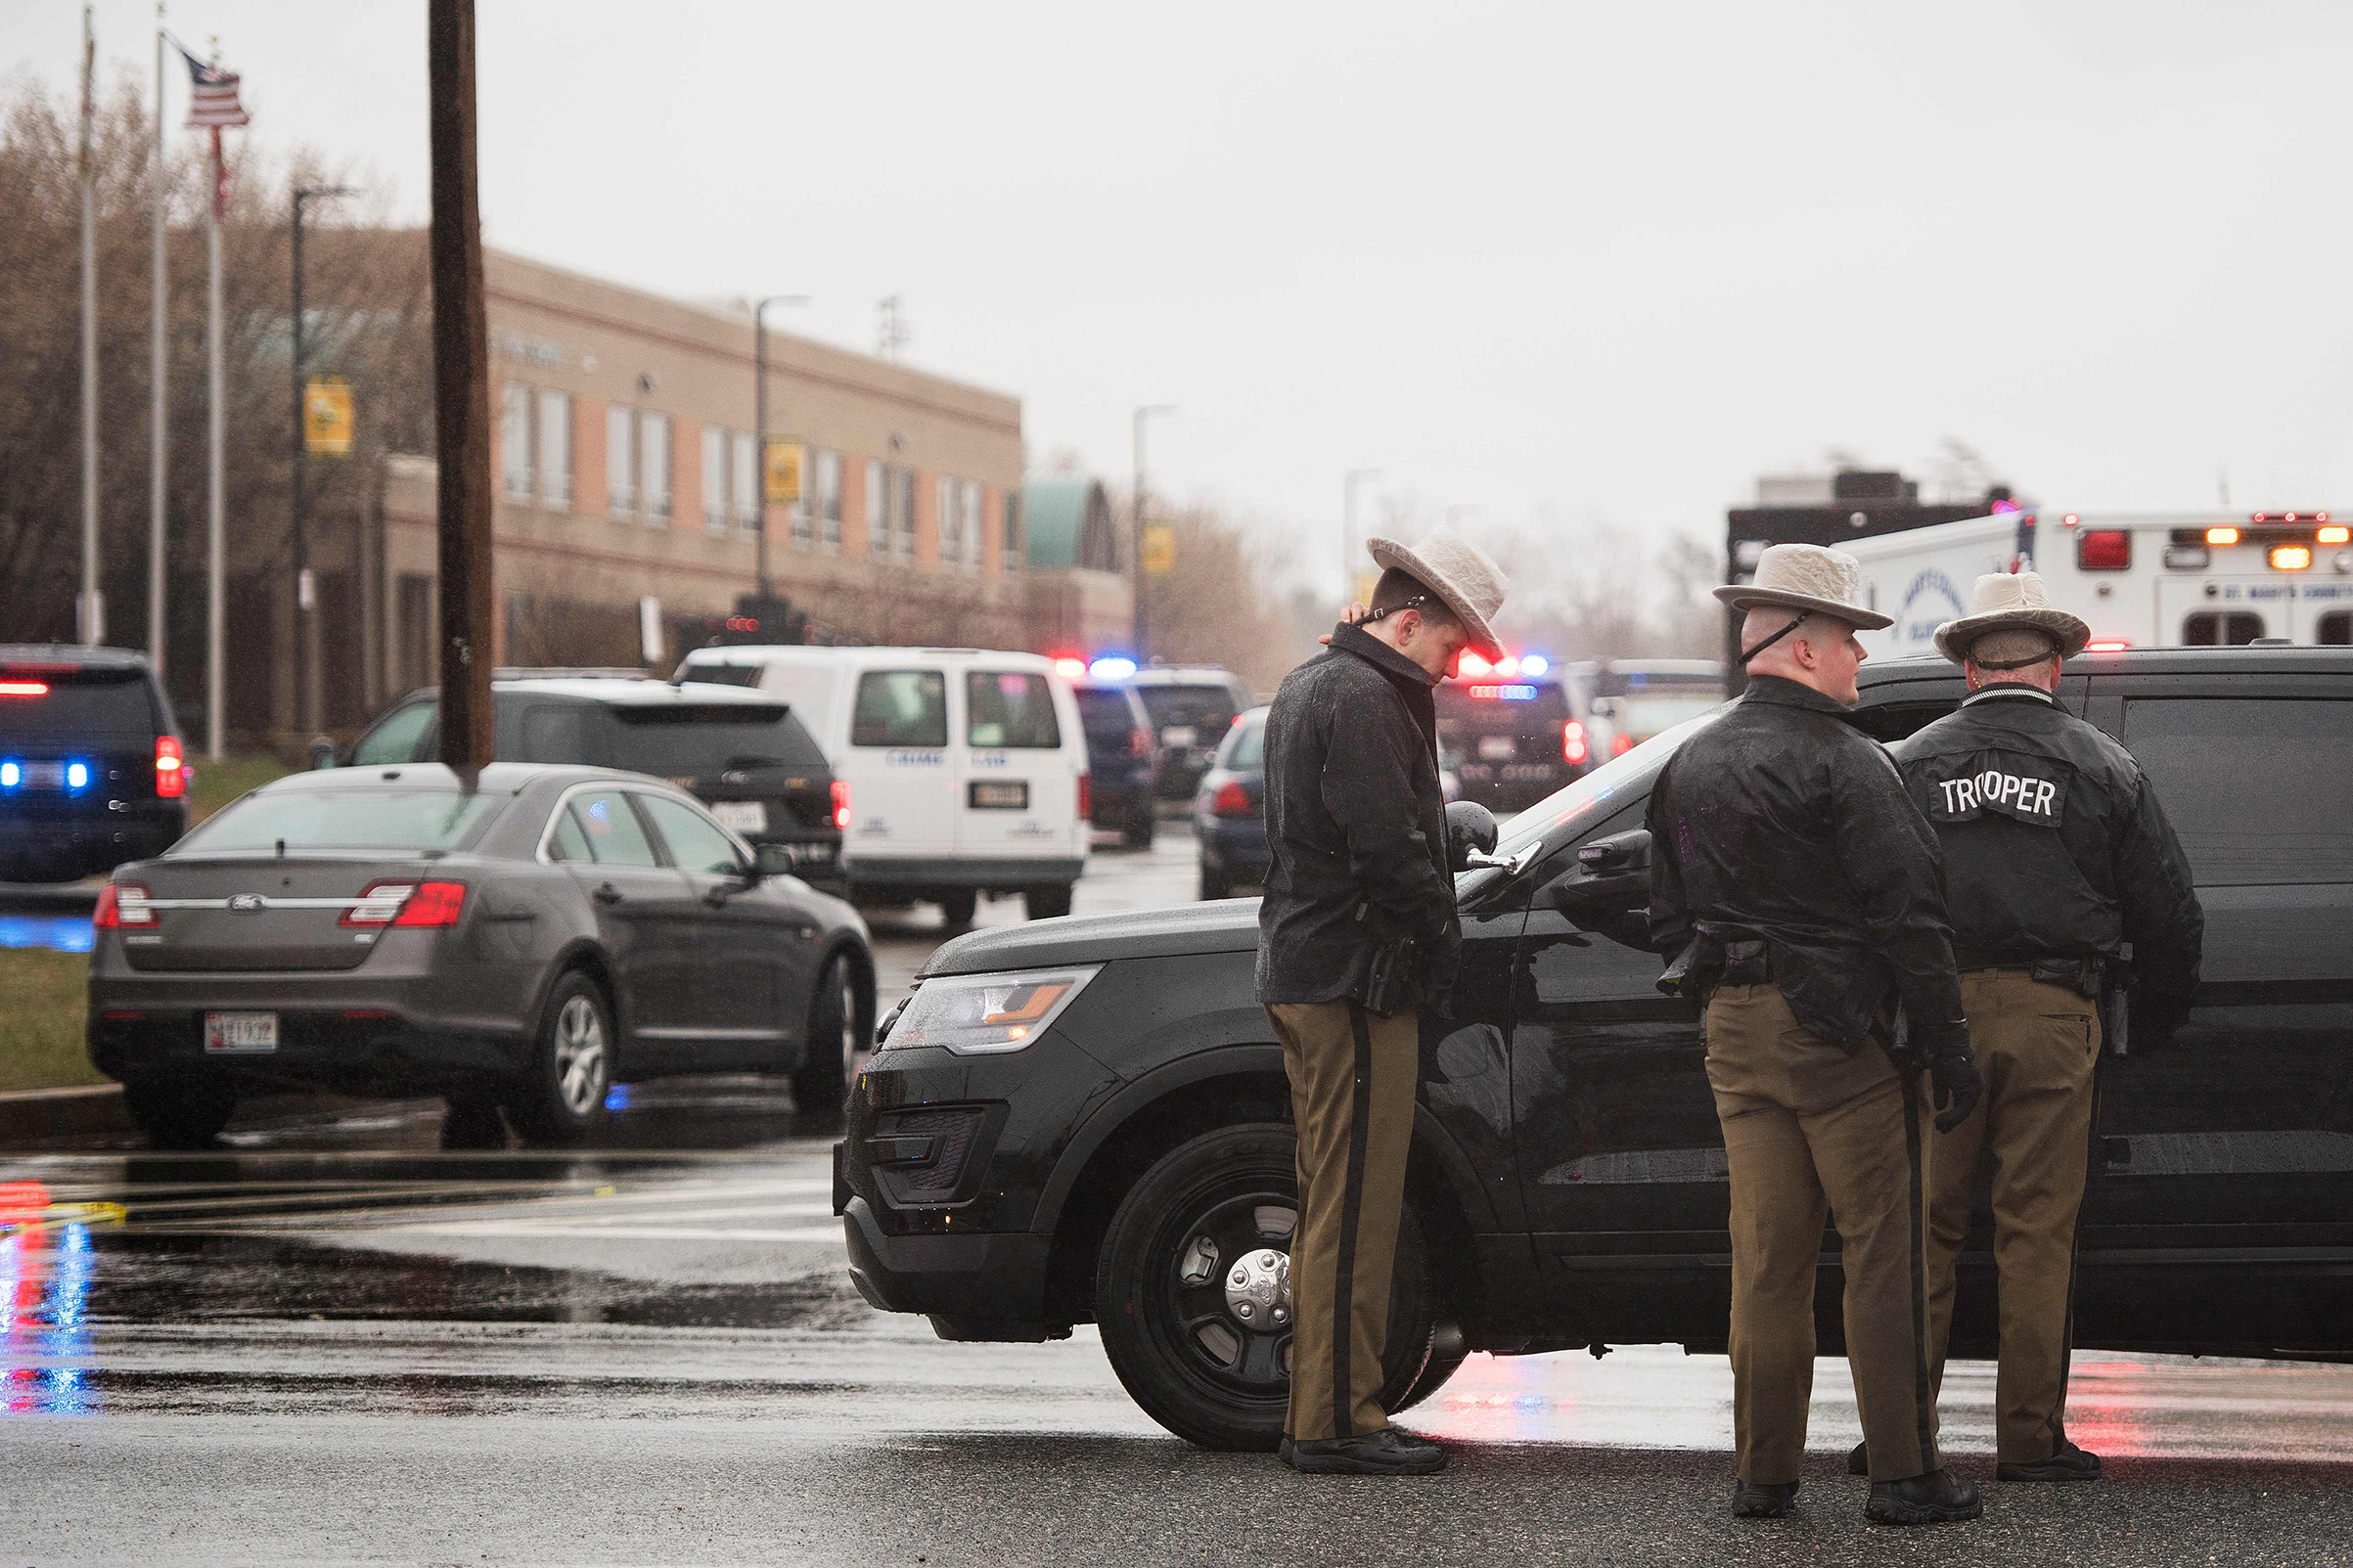 Maryland State Troopers gather on March 20, 2018 at Great Mills High School in Great Mills, Maryland after a shooting at the school.